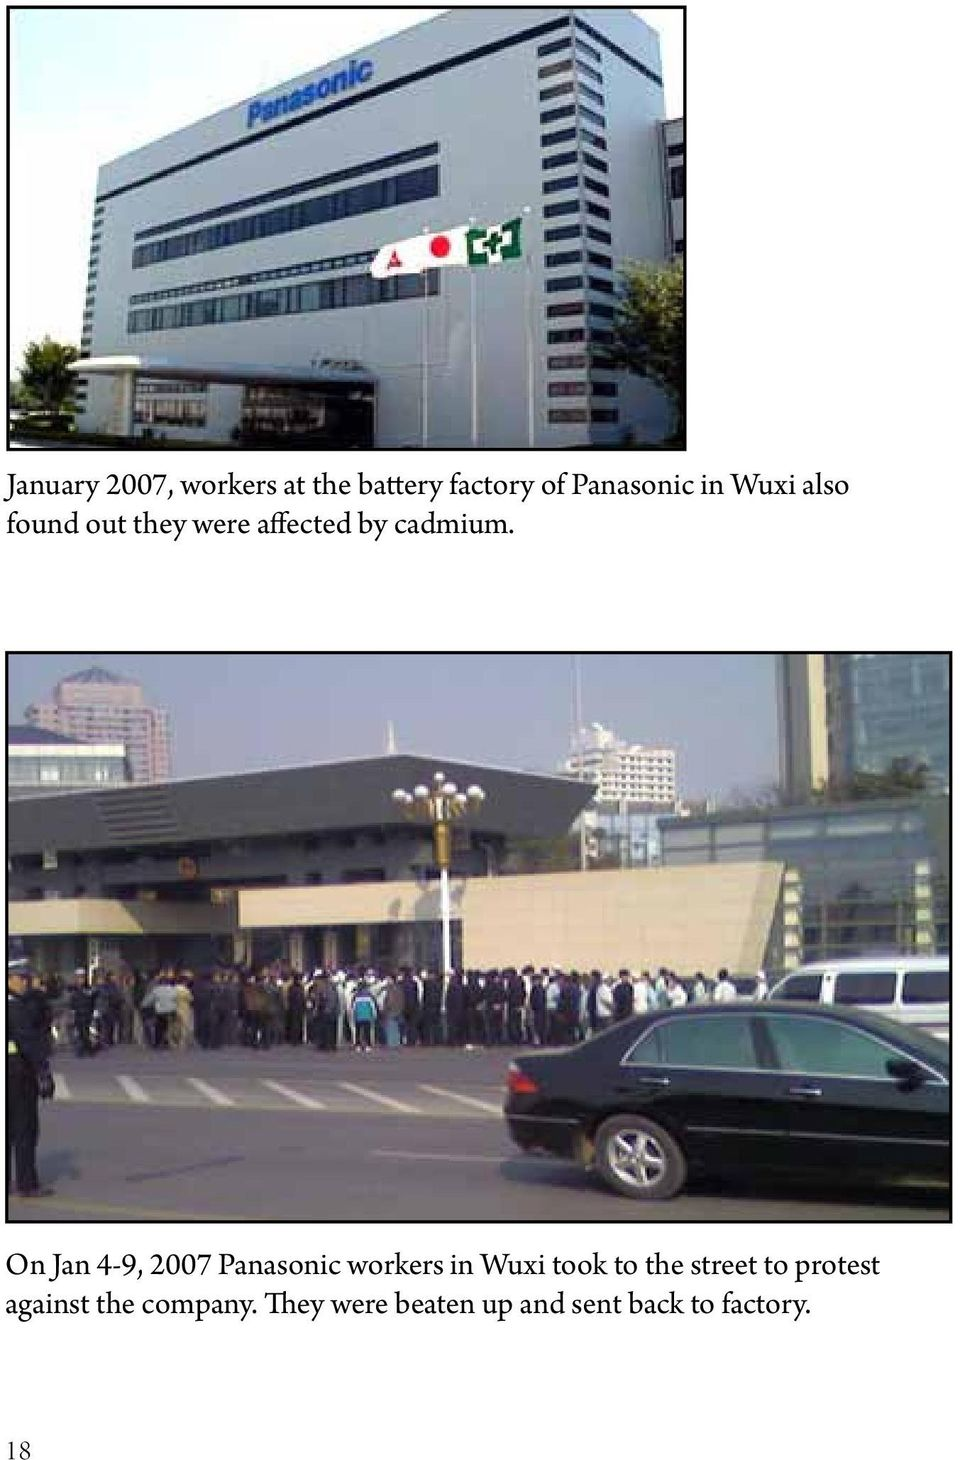 On Jan 4-9, 2007 Panasonic workers in Wuxi took to the street